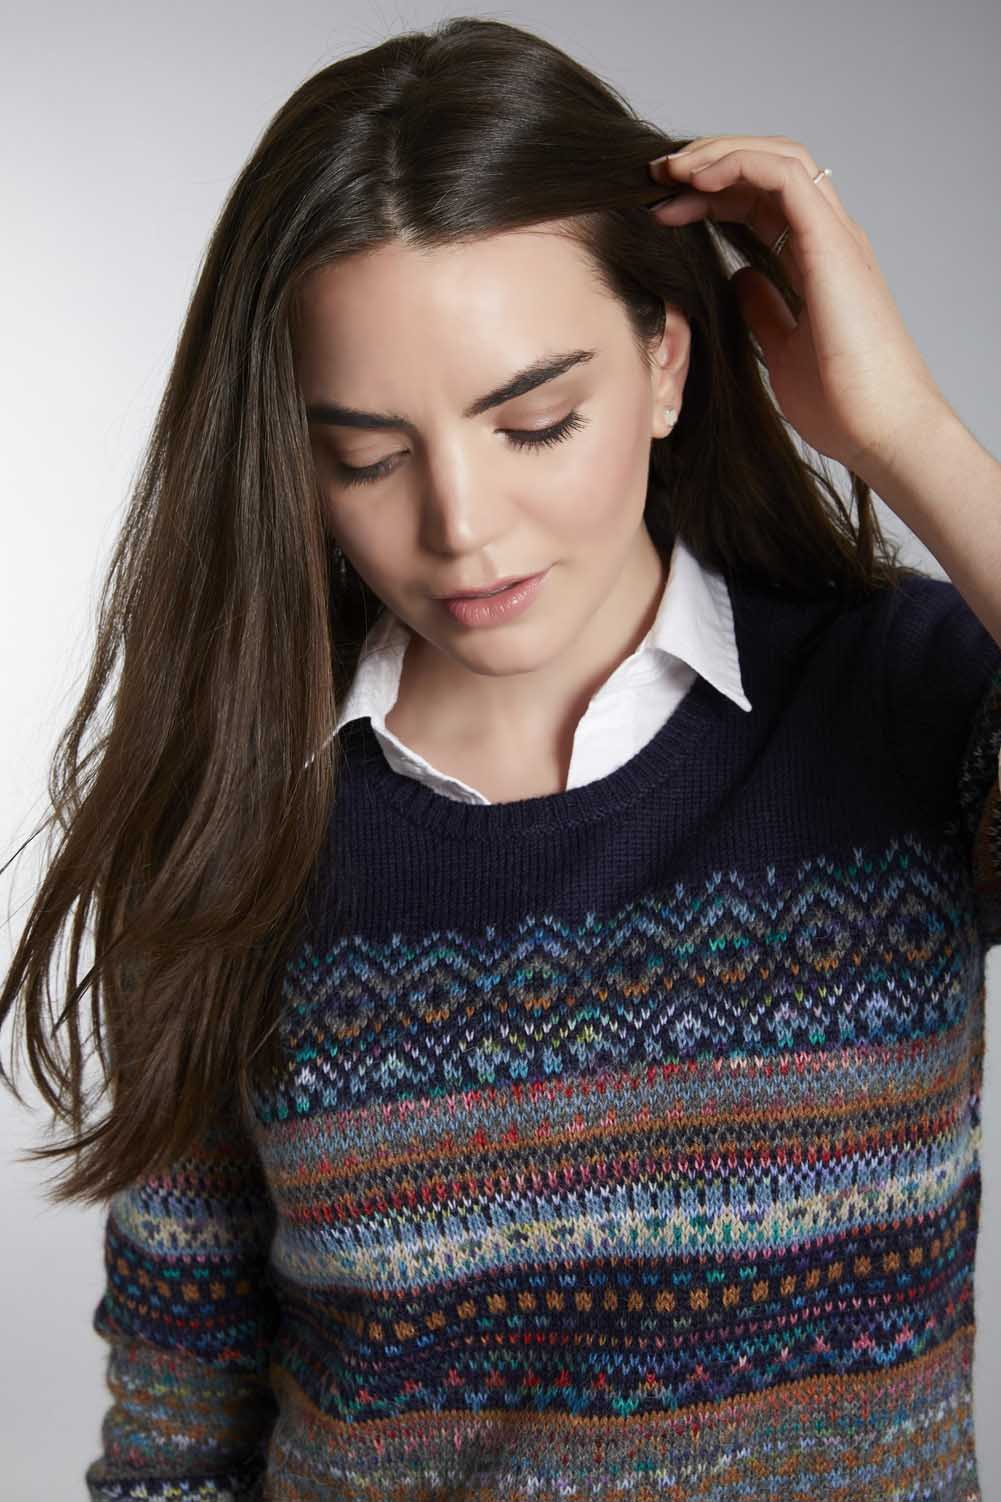 Invisible World Women's Pullover Abancay Hand-Dyed Alpaca Fair Isle Jumper for Women